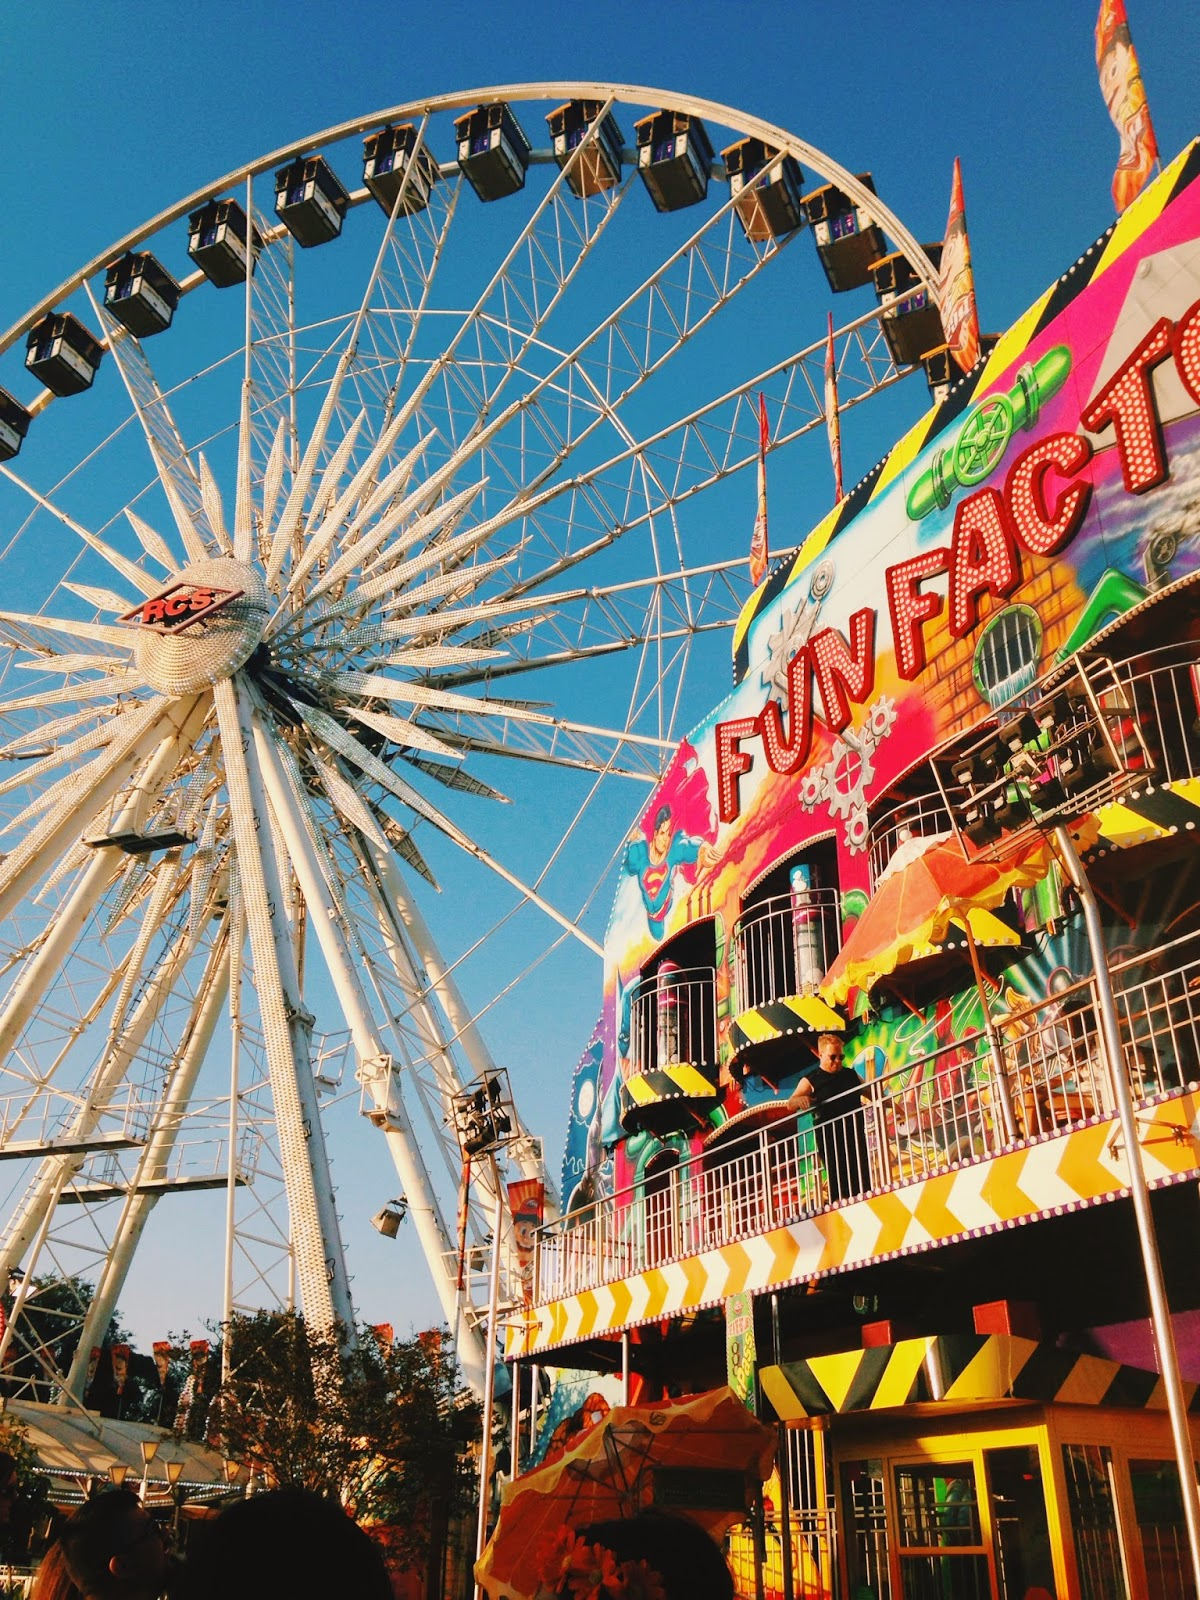 Support of OC Fair & Event Center provides year-round educational opportunities and helps fund community give-back programs.